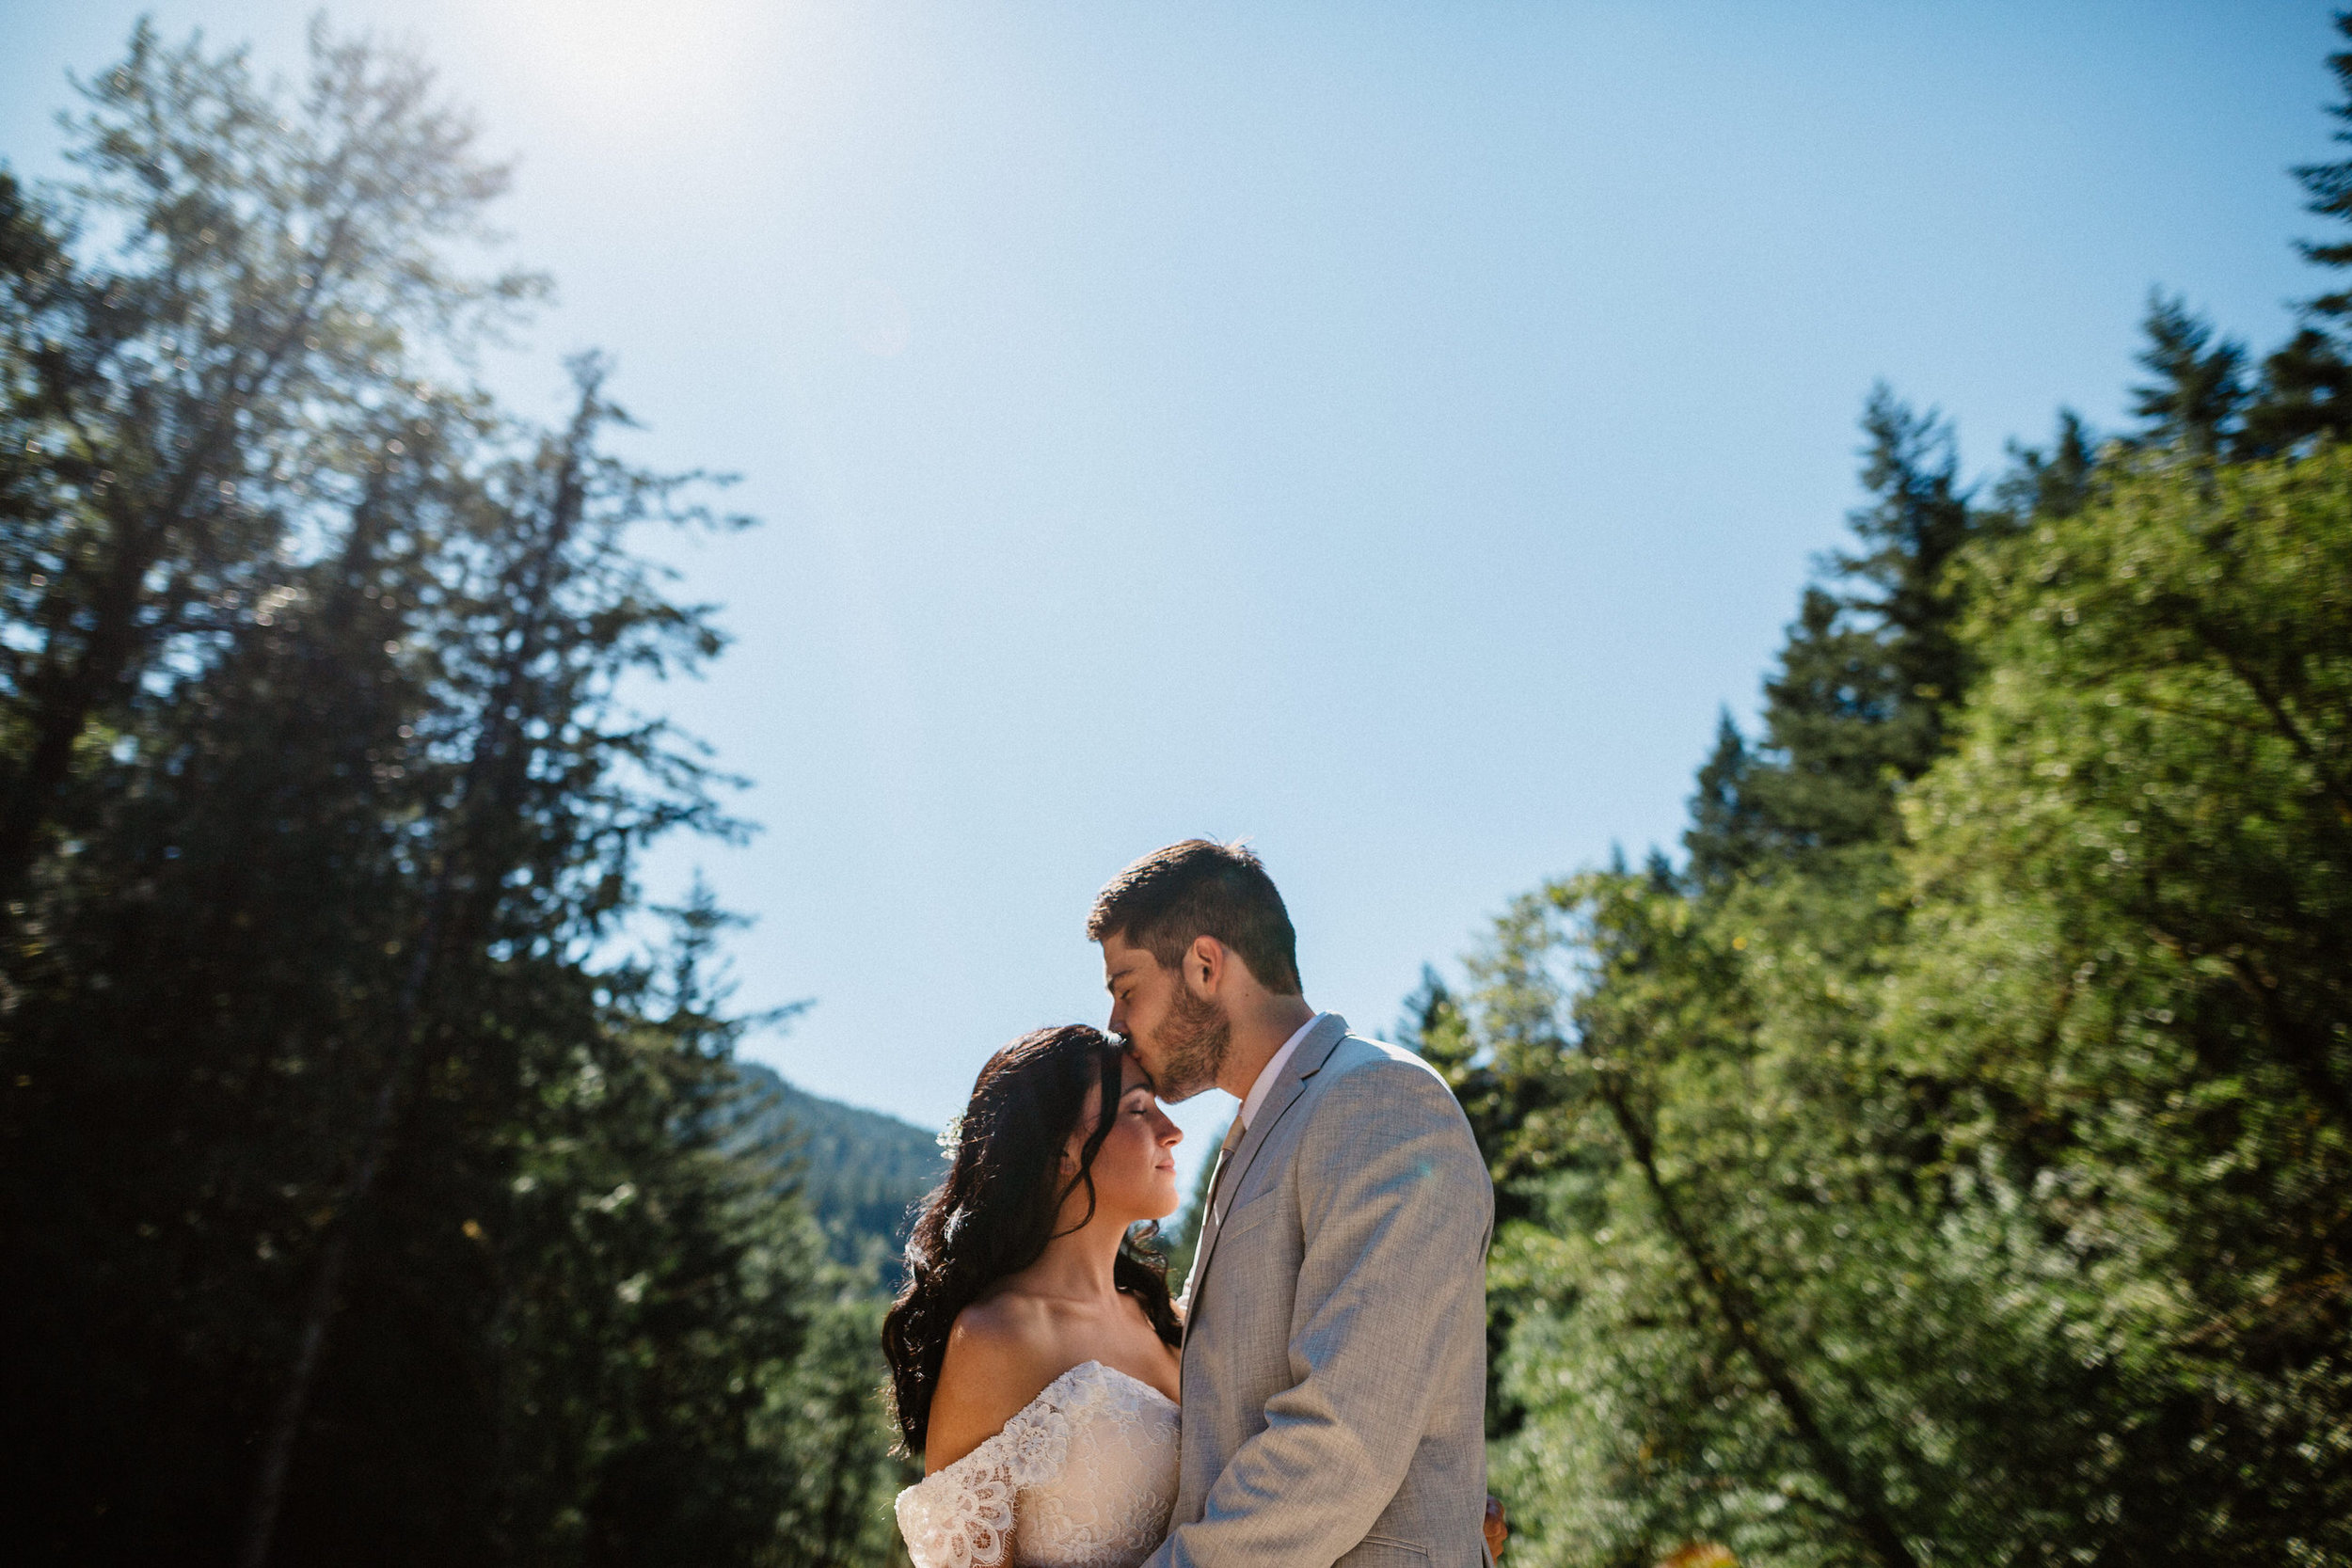 Mt hood wedding 4.jpg